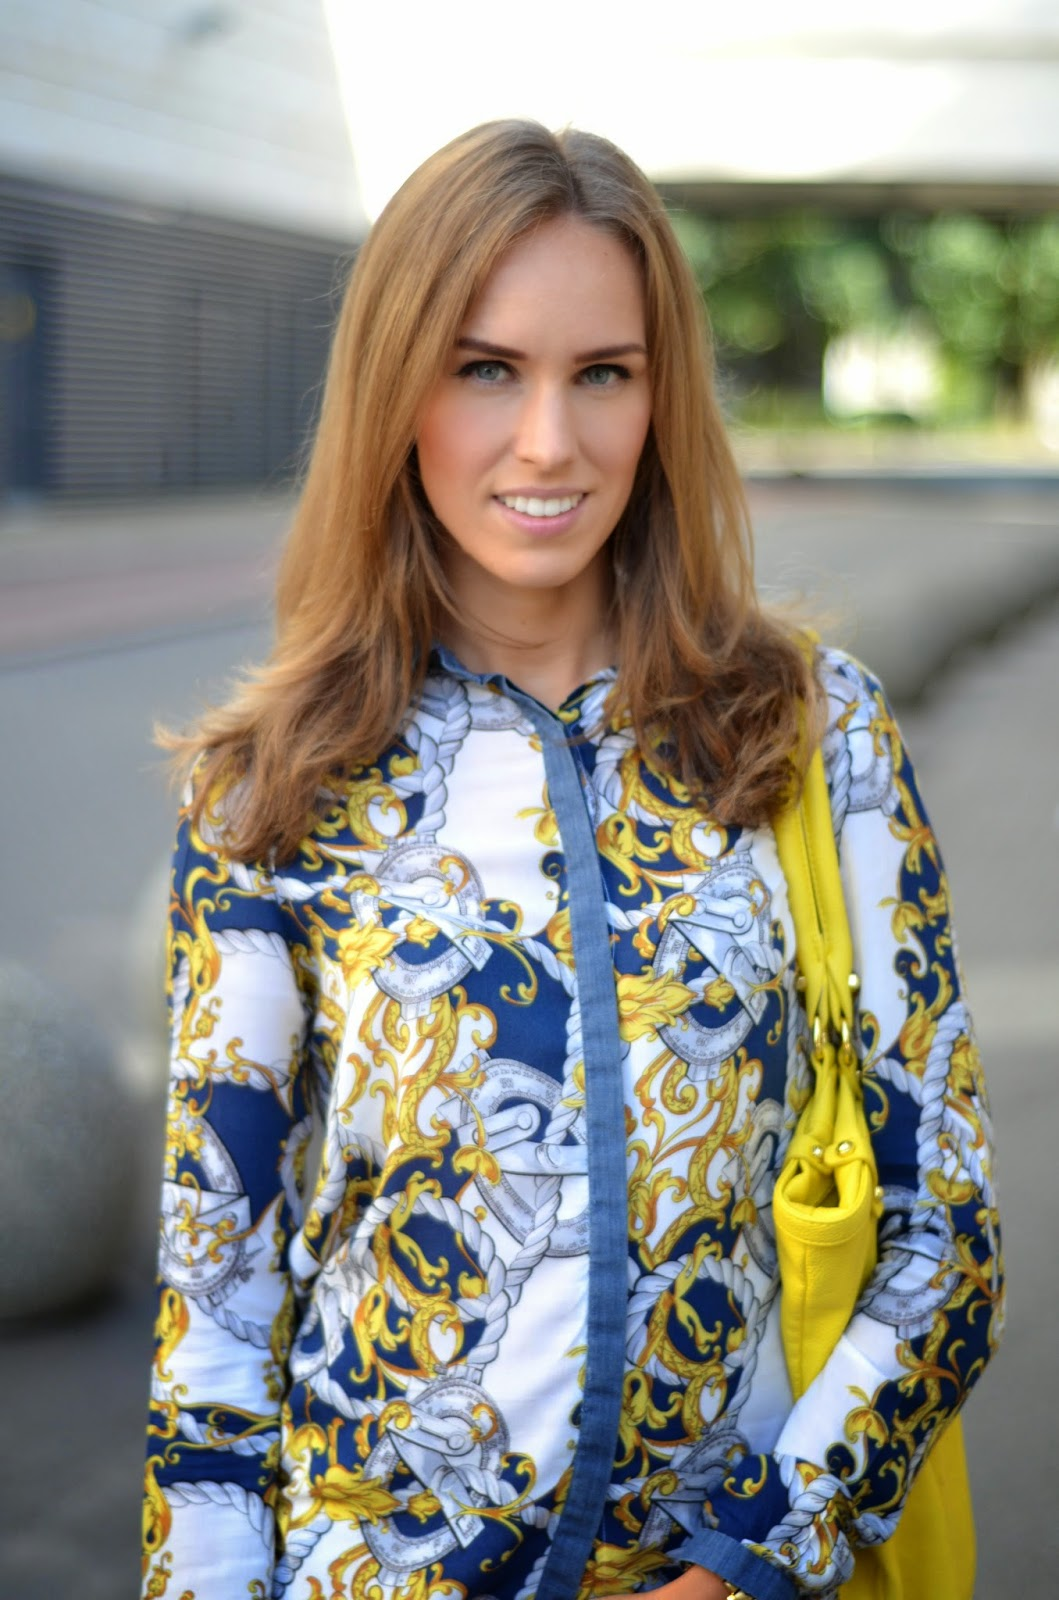 stradivarius anchor print shirt monton yellow bag